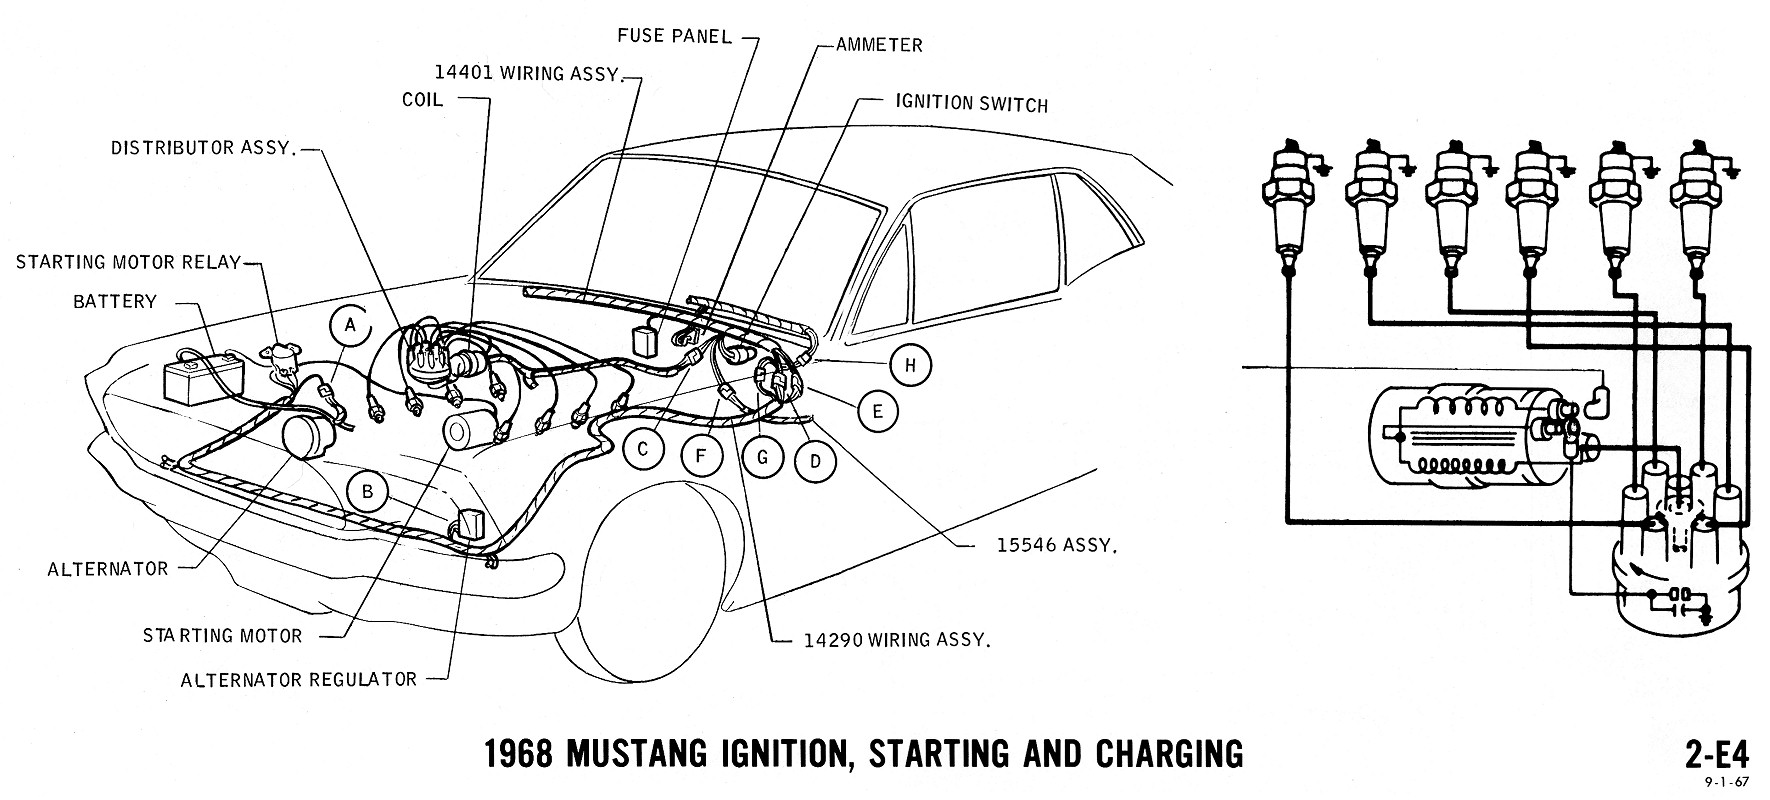 1968 Mustang Wiring Diagrams And Vacuum Schematics Average Joe V Twin Diagram Ignition Starting Charging 2